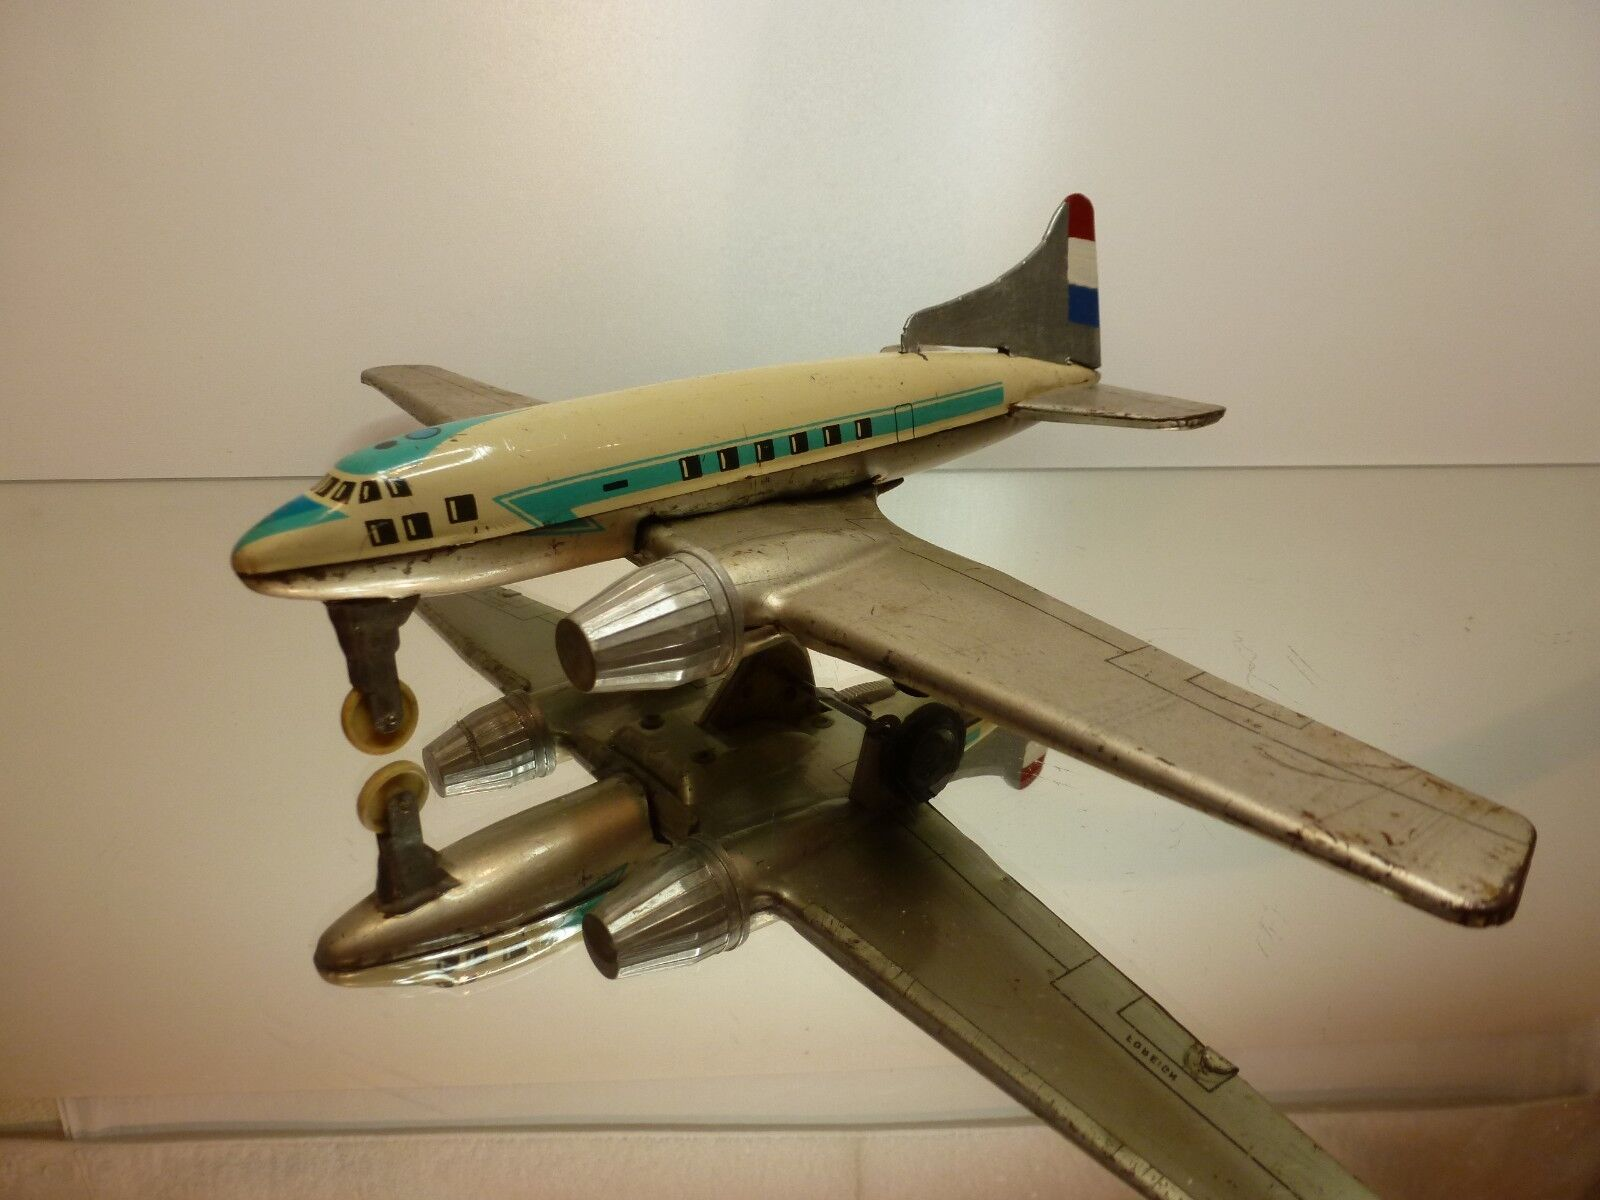 VINTAGE TIN TOY AIRPLANE - LEMEZARUGYAR FOREIGN - FRIKTION - L23.0cm - FAIR